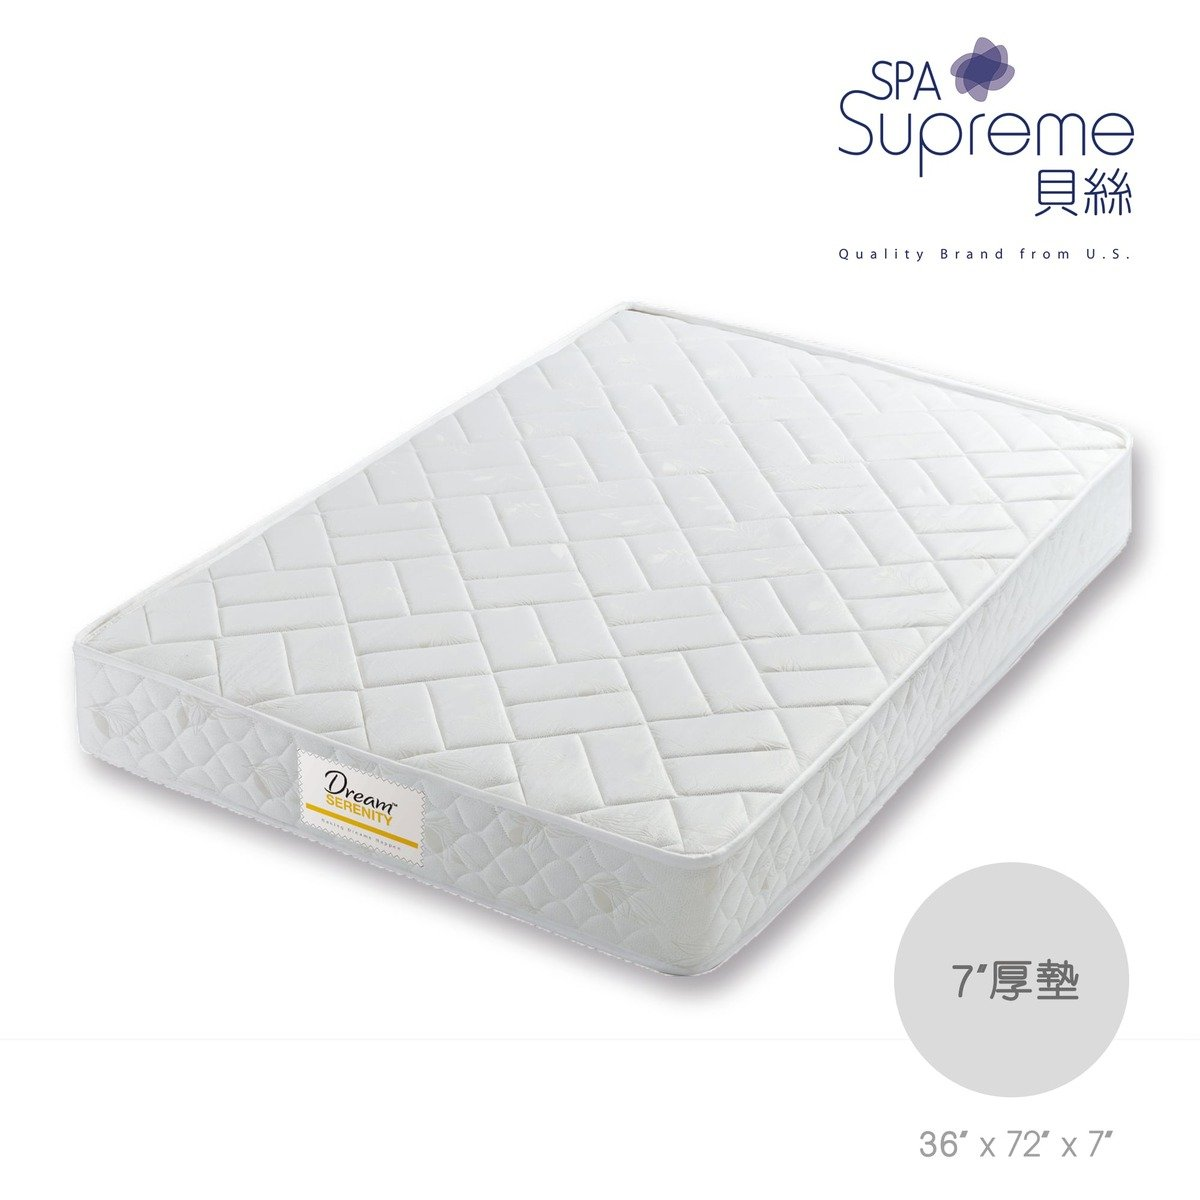 Spa superme louis mattress 36x72x7 hktvmall online for Online shopping for mattress